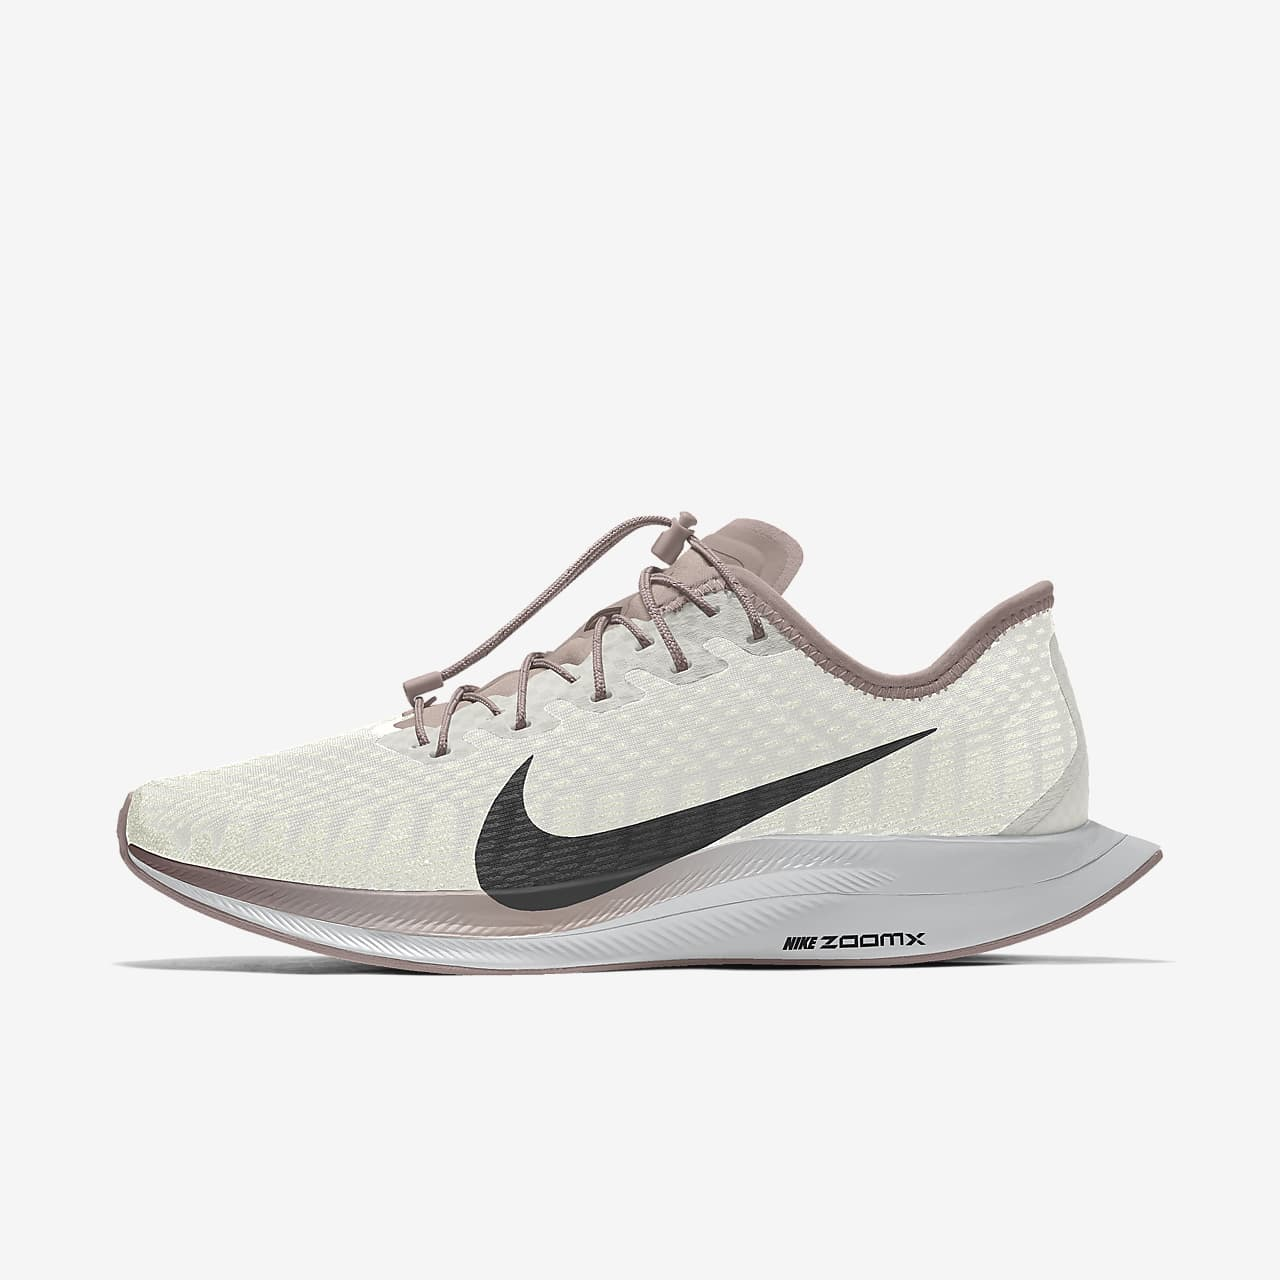 Chaussure de running personnalisable Nike Zoom Pegasus Turbo 2 Premium By You pour Homme